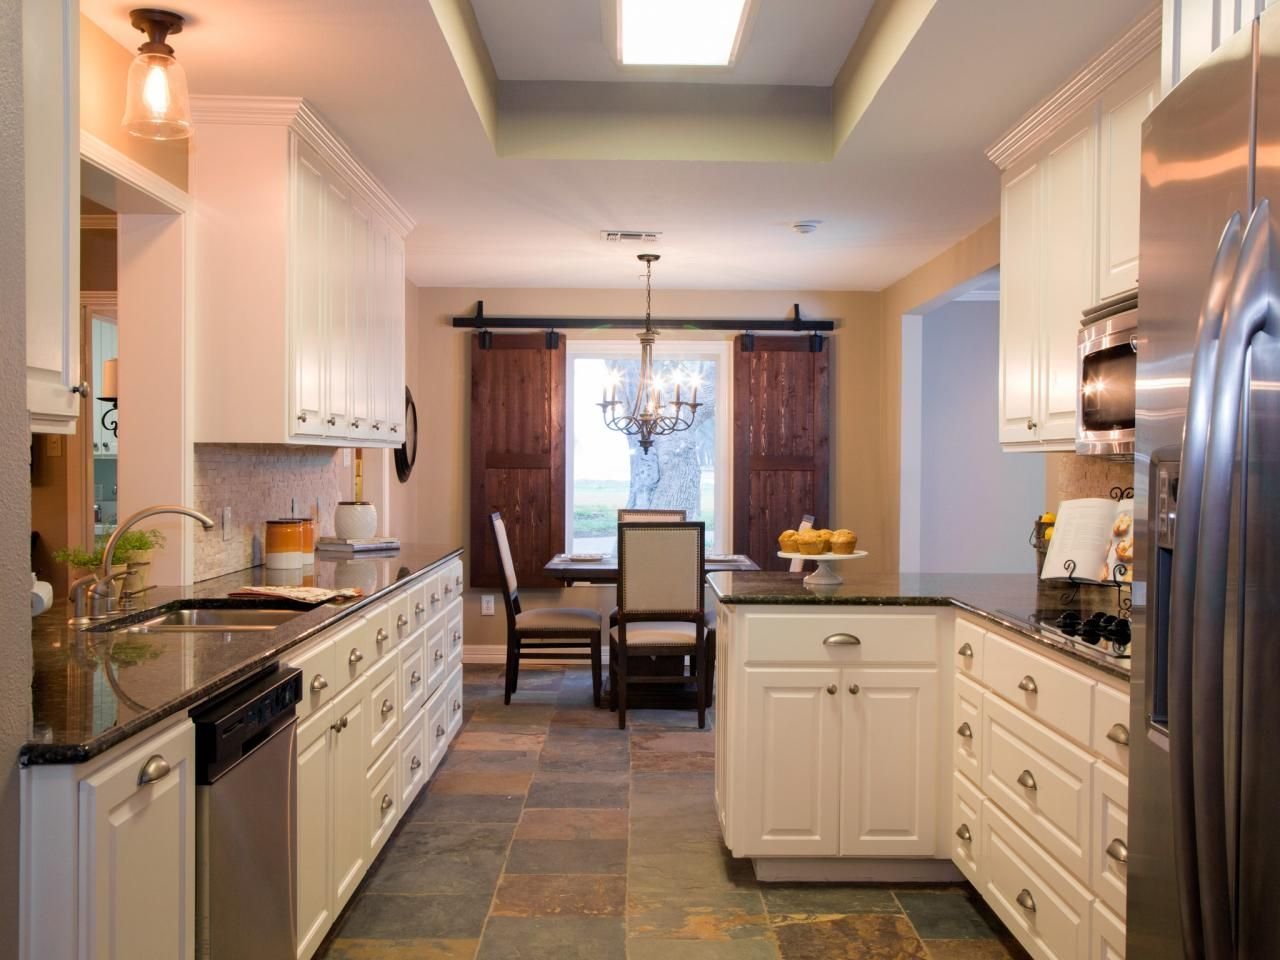 Hgtv fixer upper galley kitchen - Find The Best Of Hgtv S Fixer Upper With Chip And Joanna Gaines From Hgtv